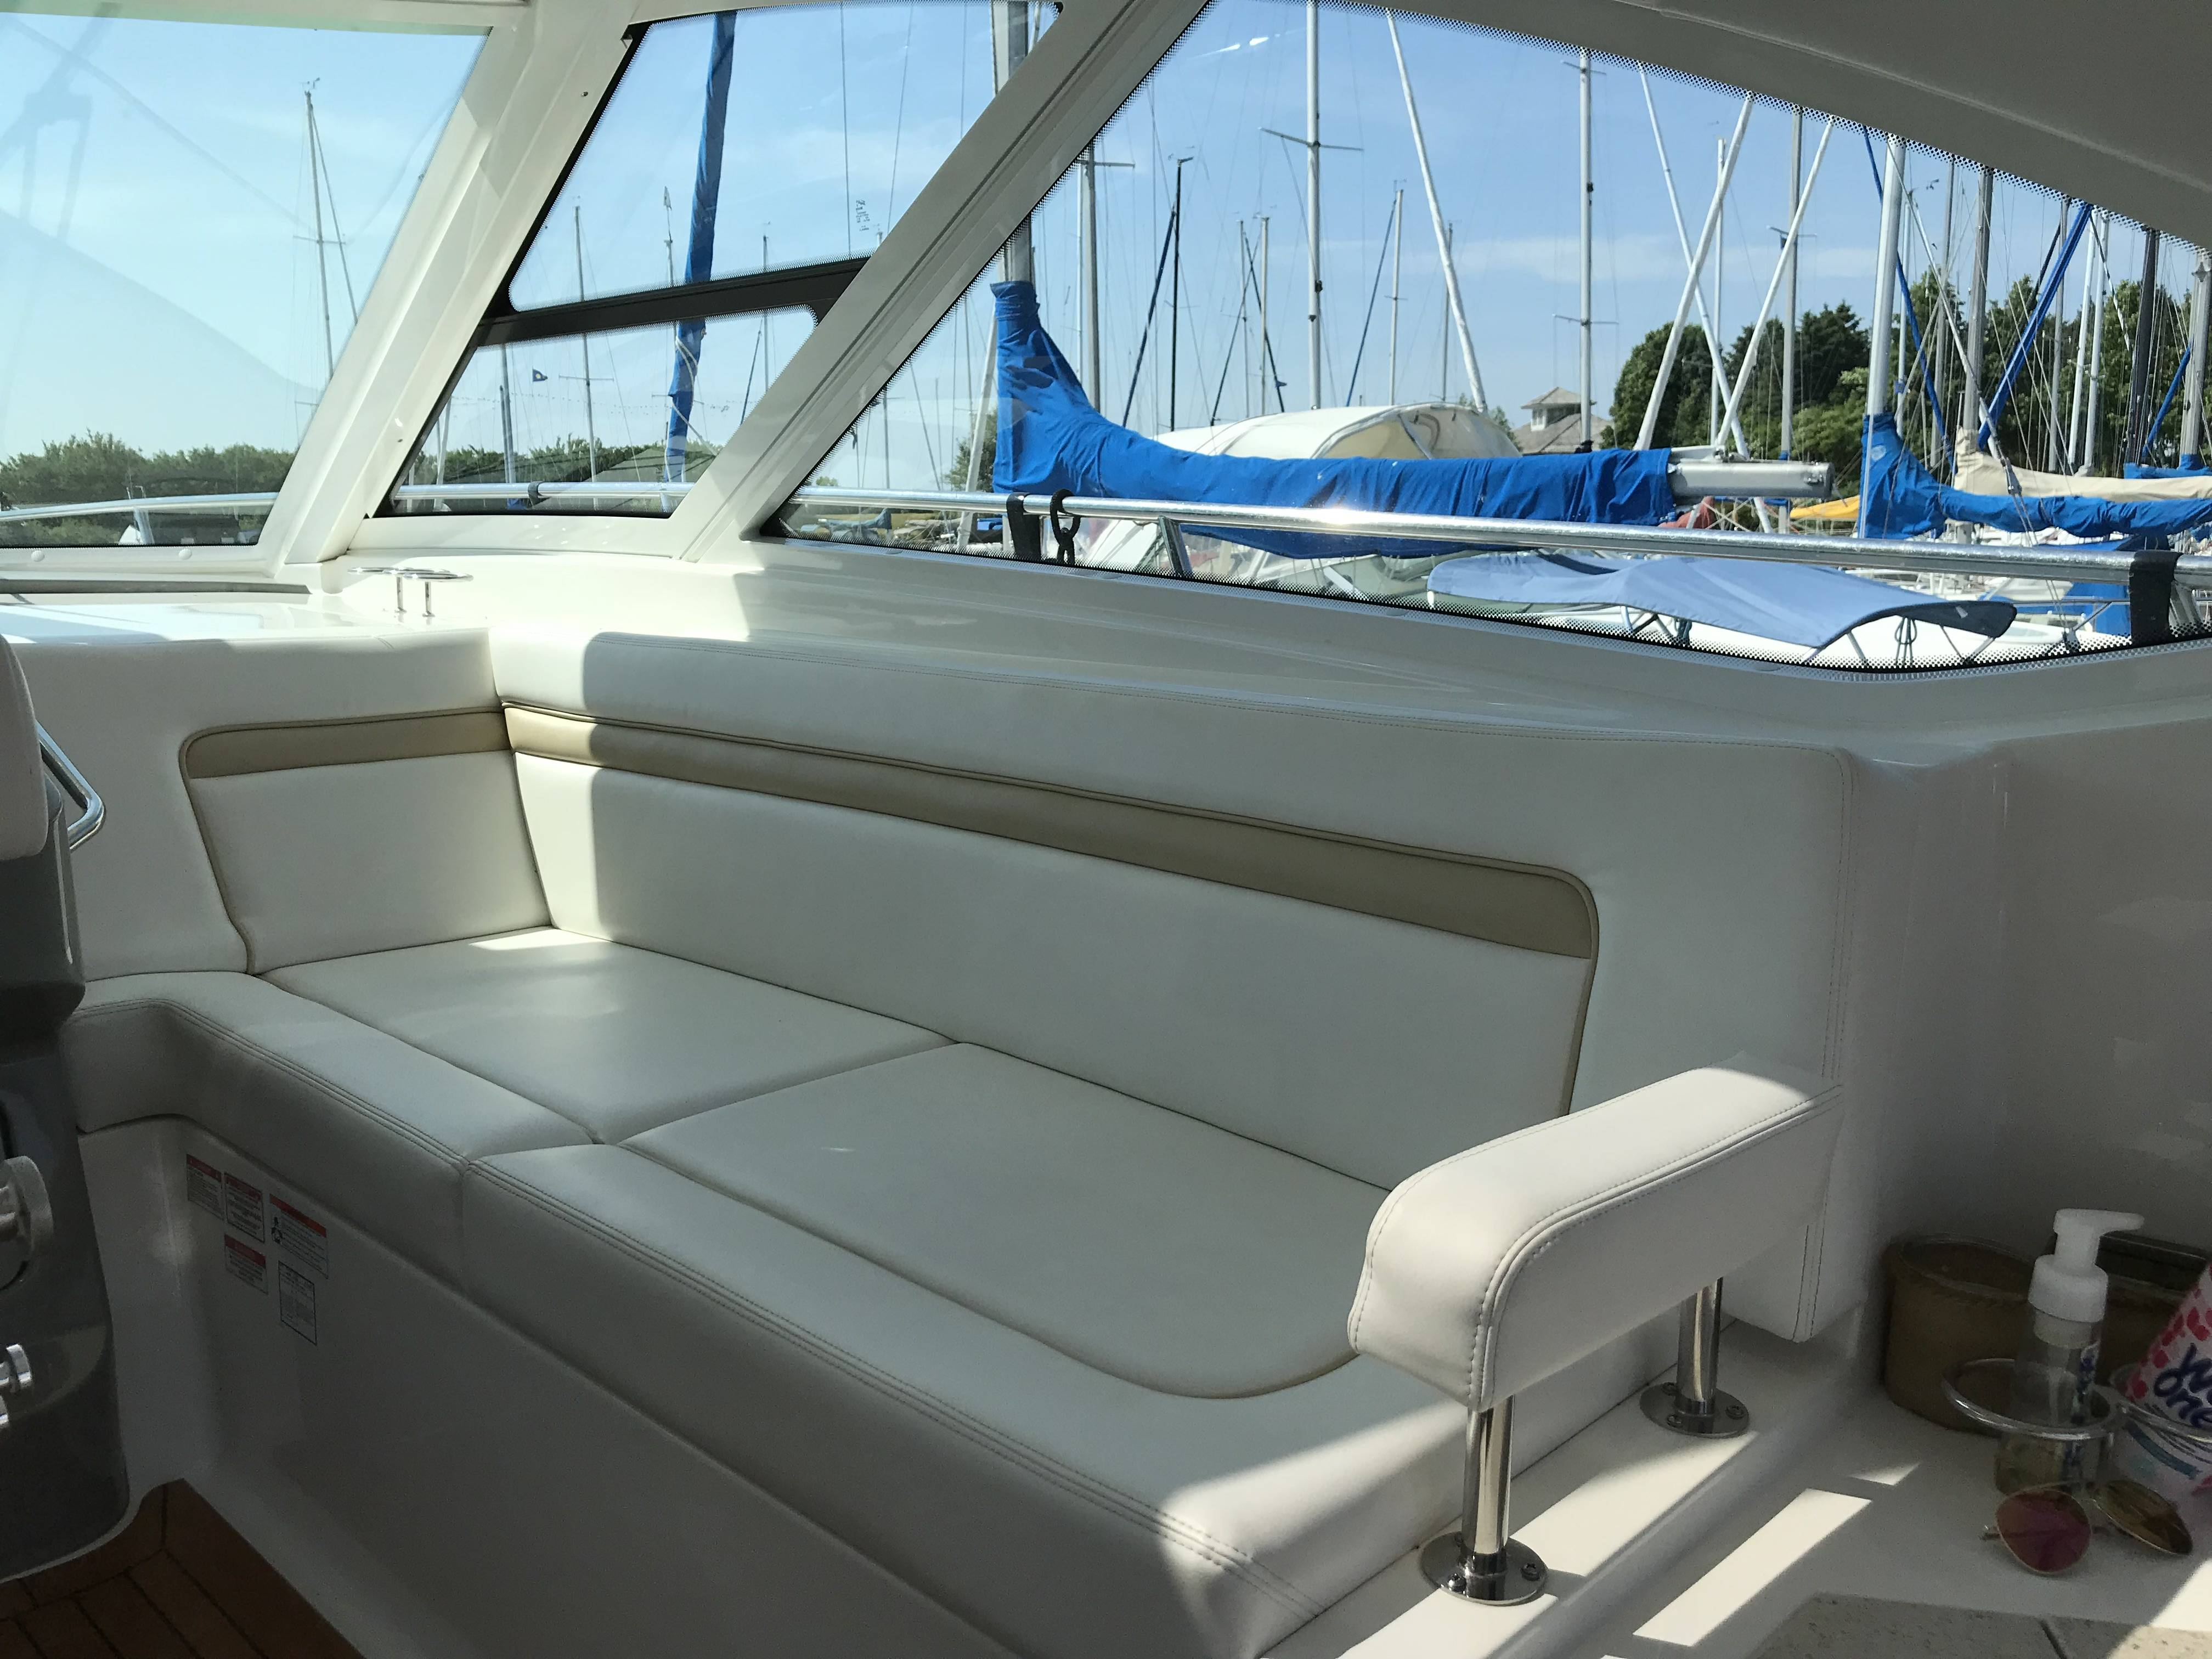 2010 Sea Ray boat for sale, model of the boat is 540 SUNDANCER & Image # 13 of 28